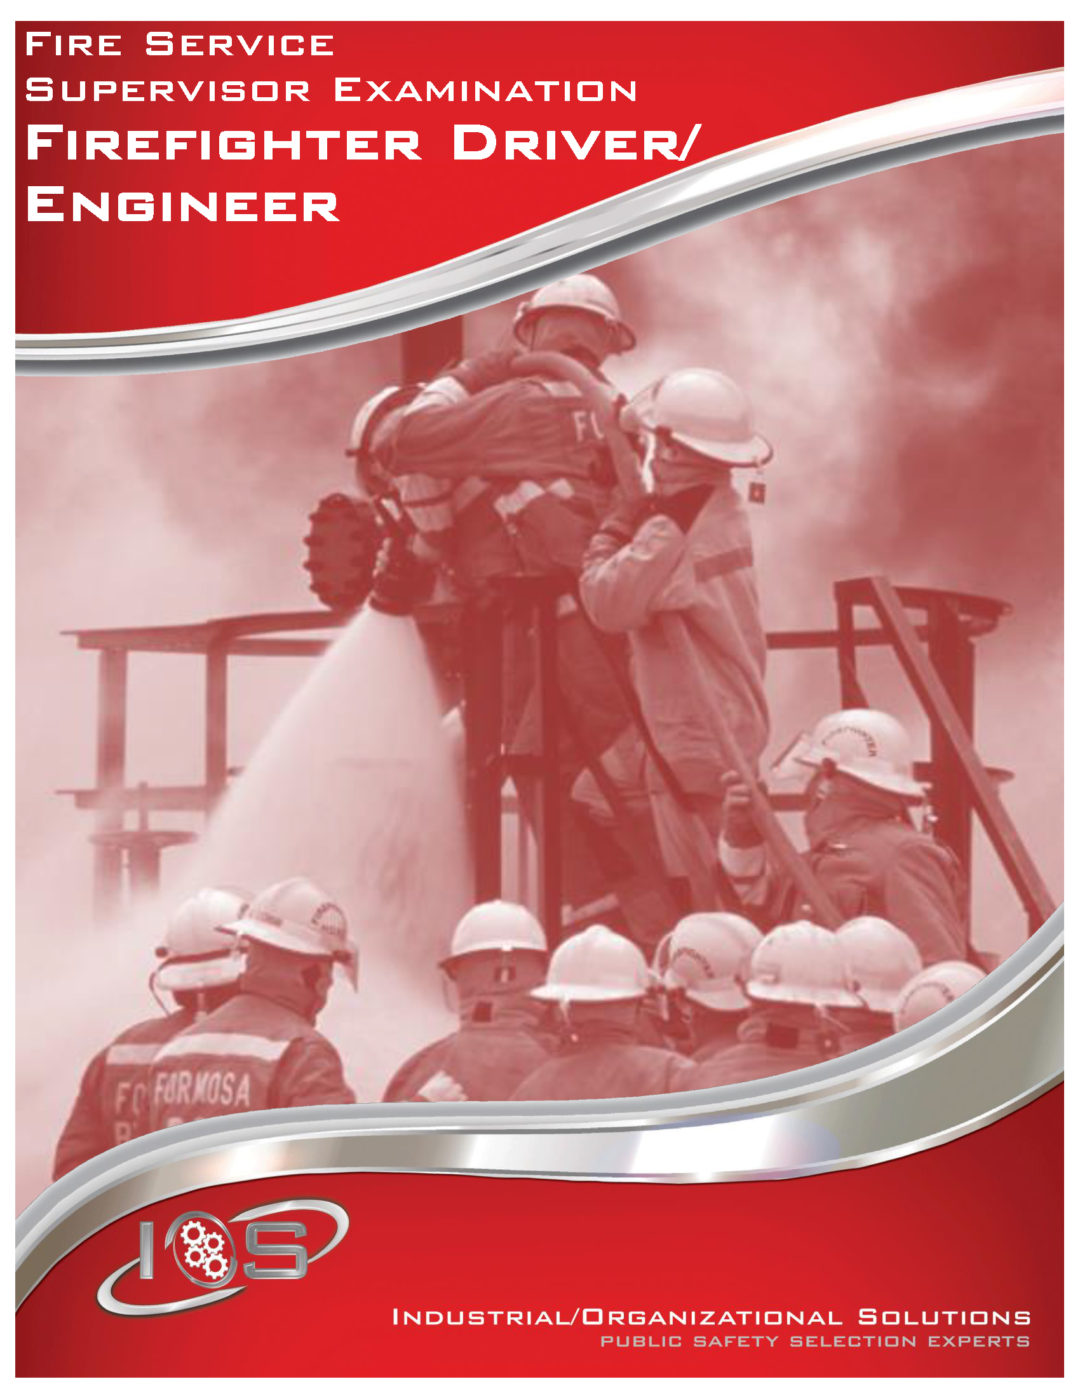 Firefighter Driver/Engineer Examination